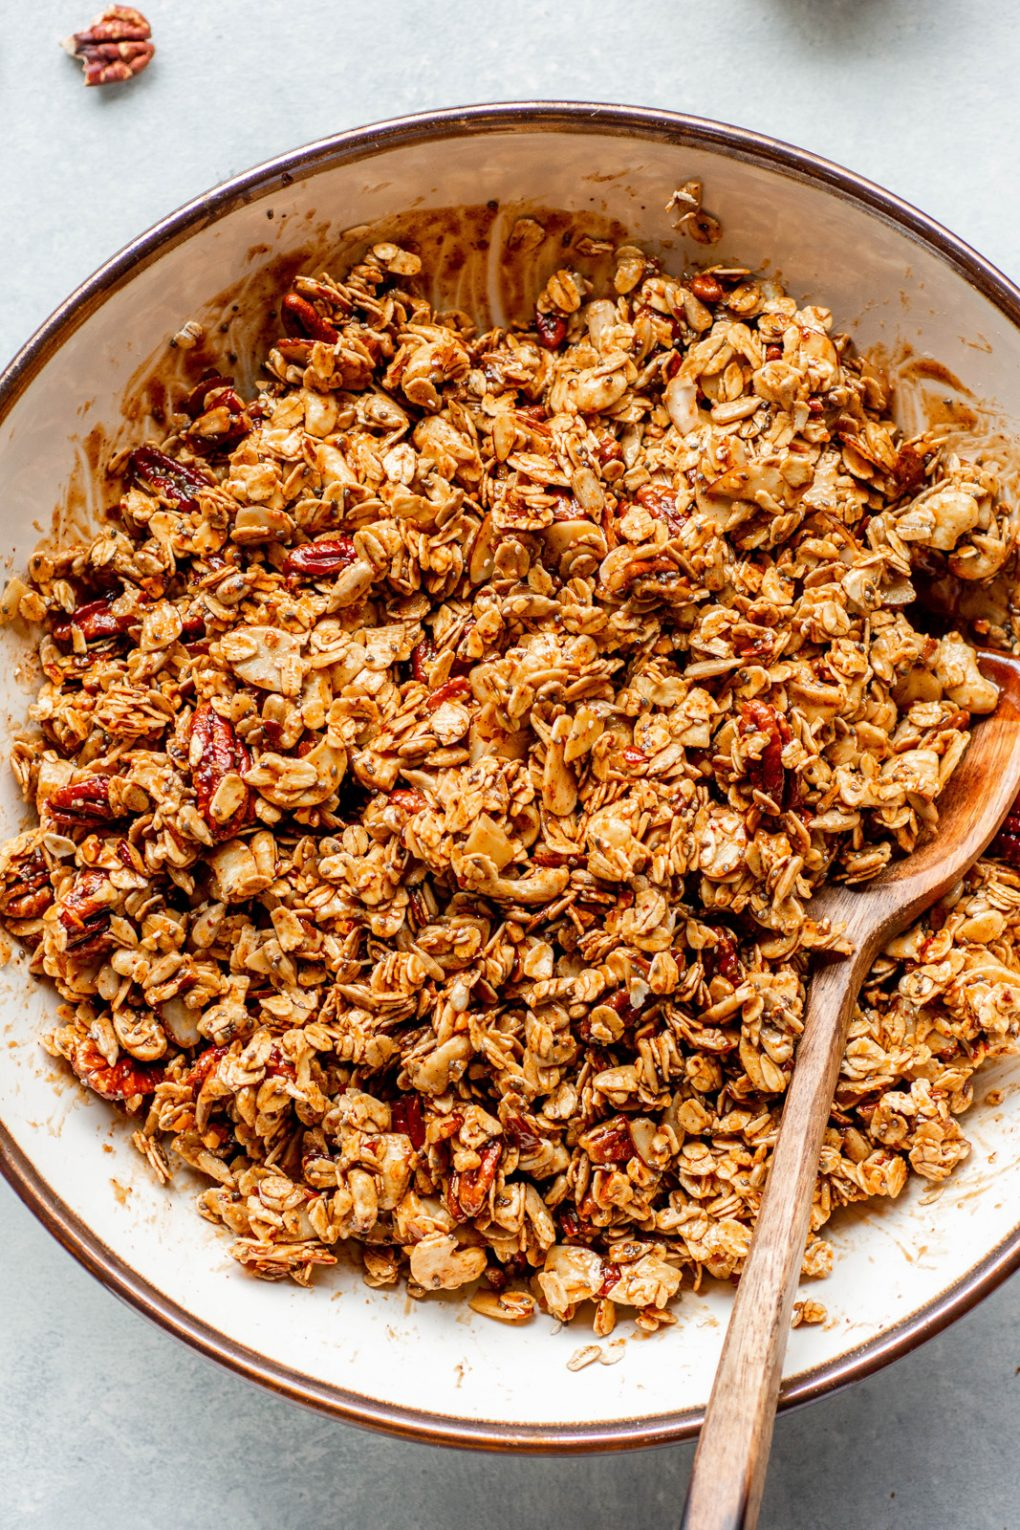 Close up overhead shot of a large bowl holding gluten free granola ingredients tossed in the binding mixture.